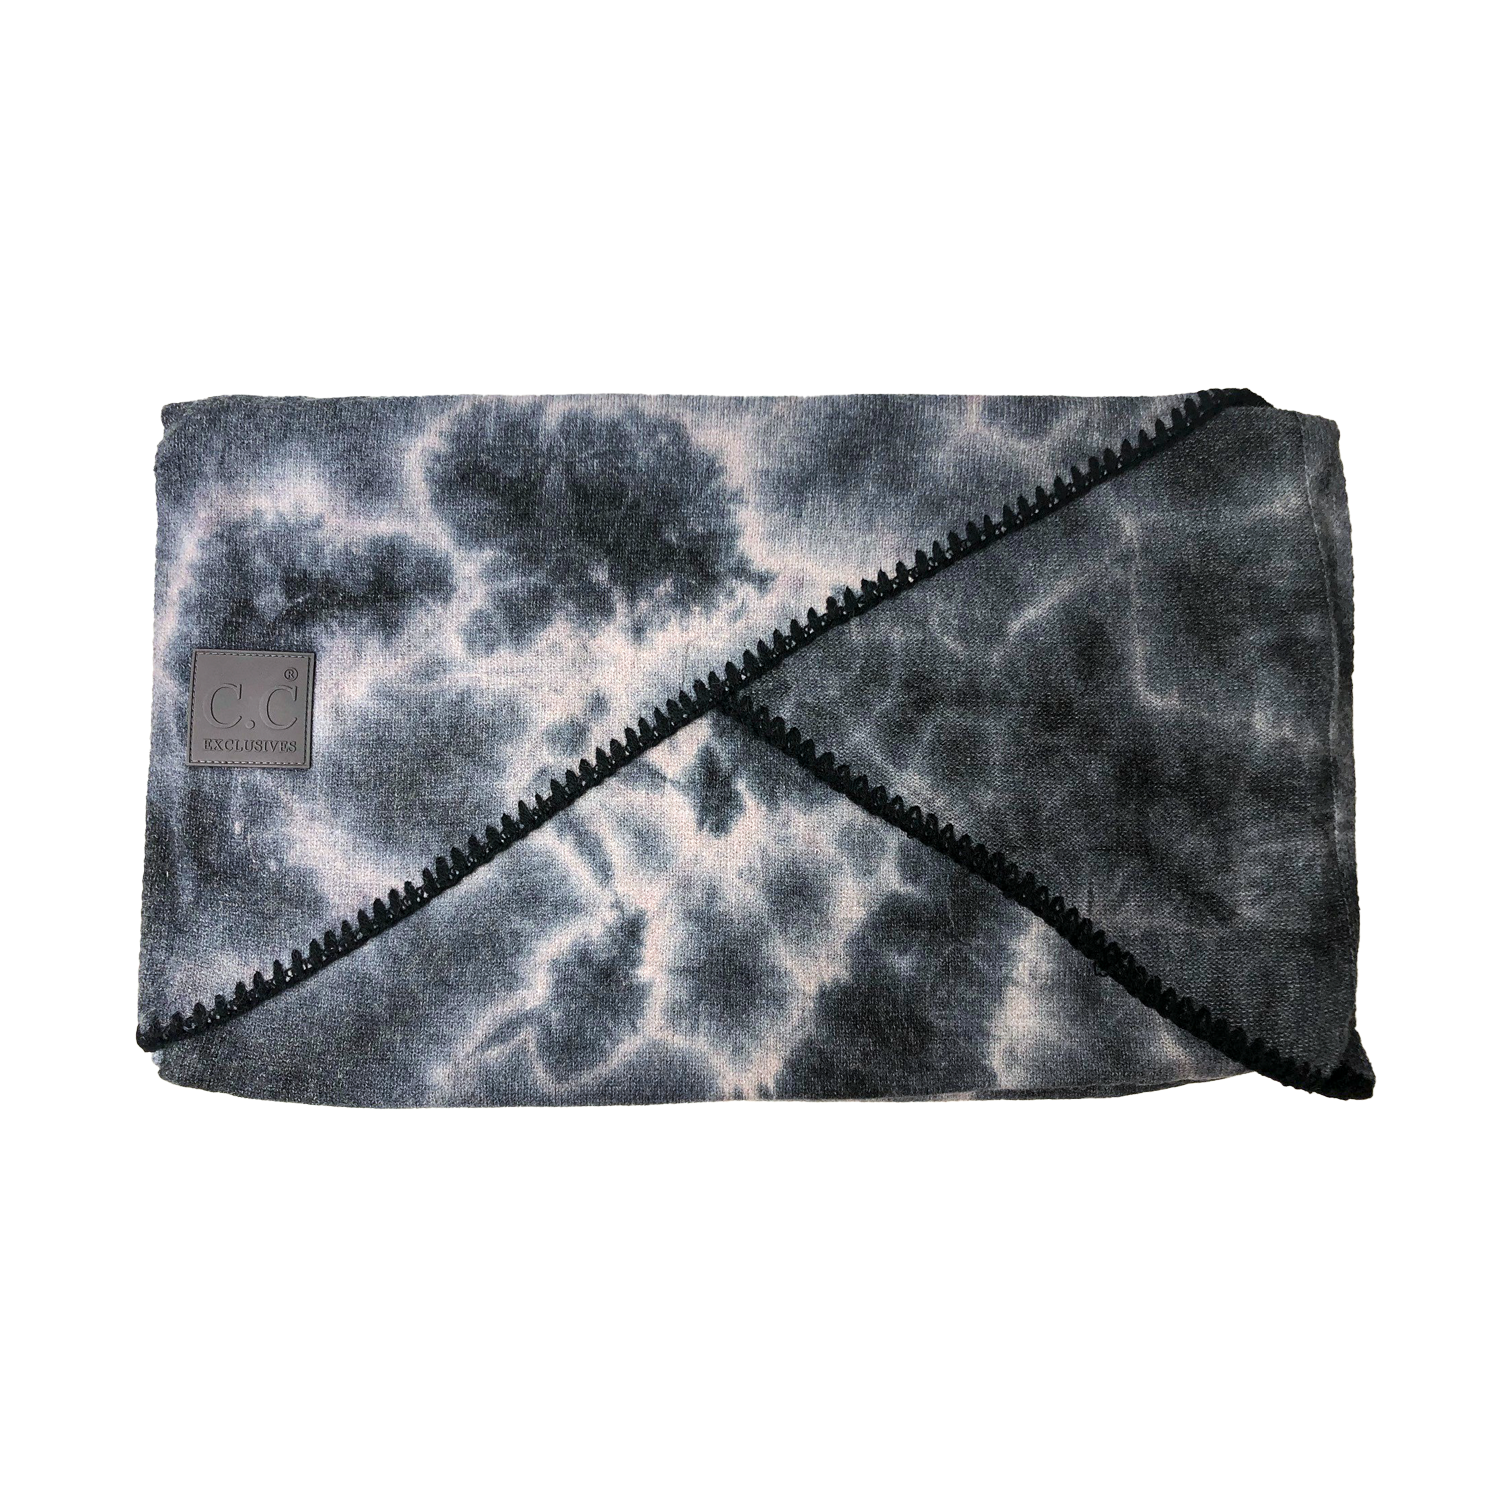 SF-7380 Tie Dye Scarf with C.C Rubber Patch - Dark Grey/Light Grey